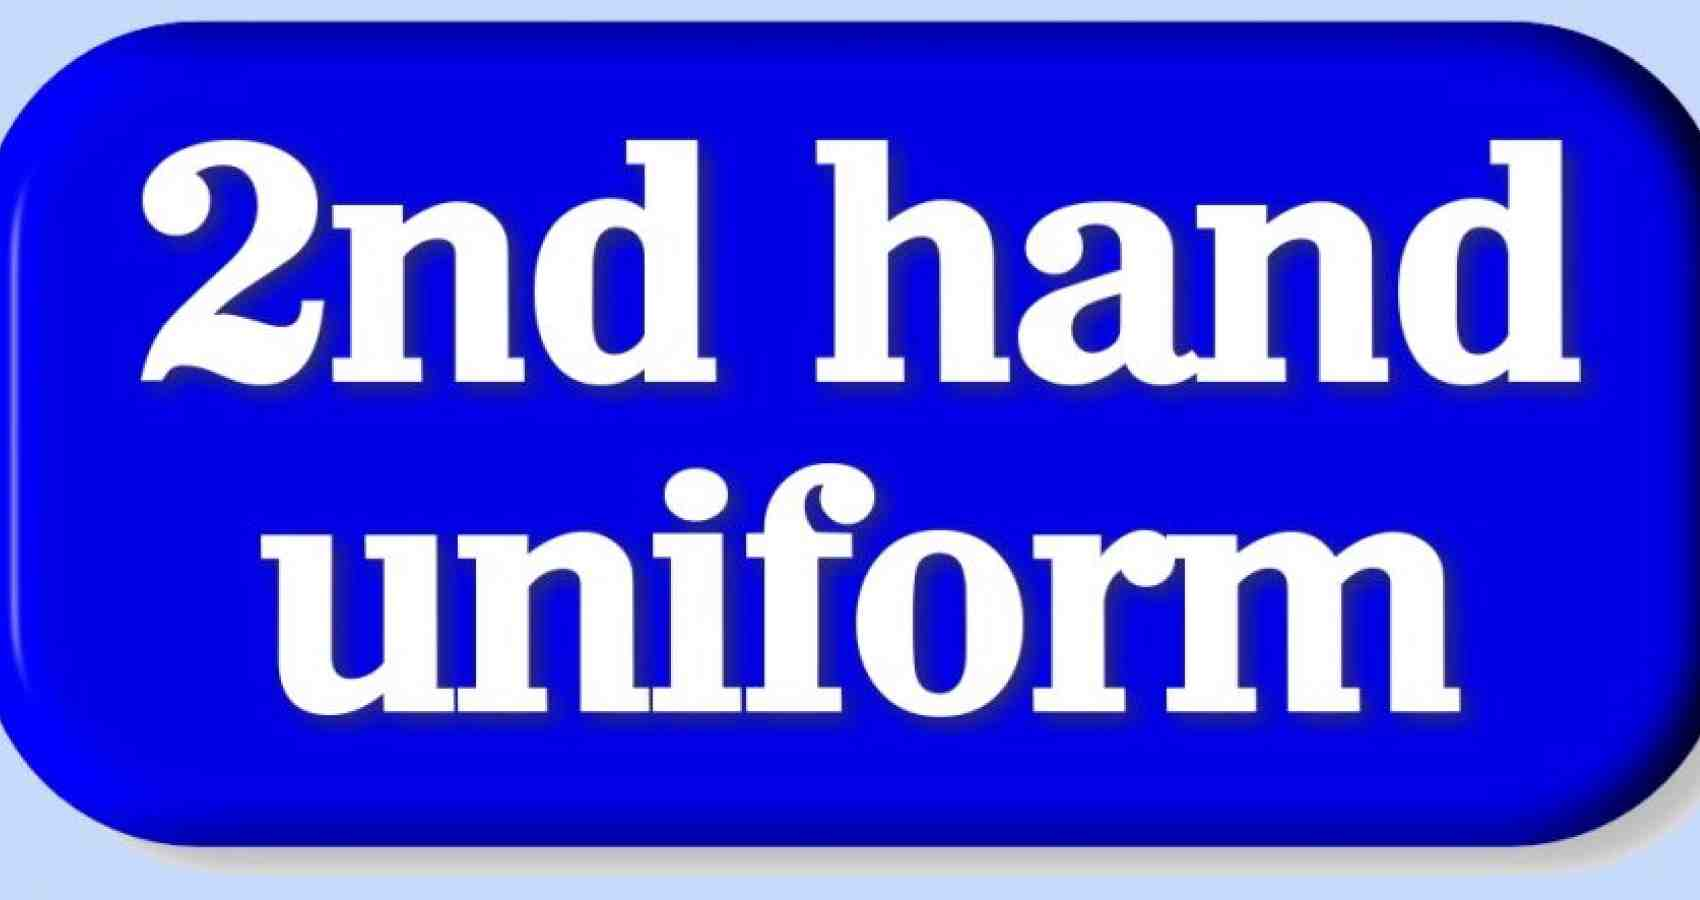 second hand uniform